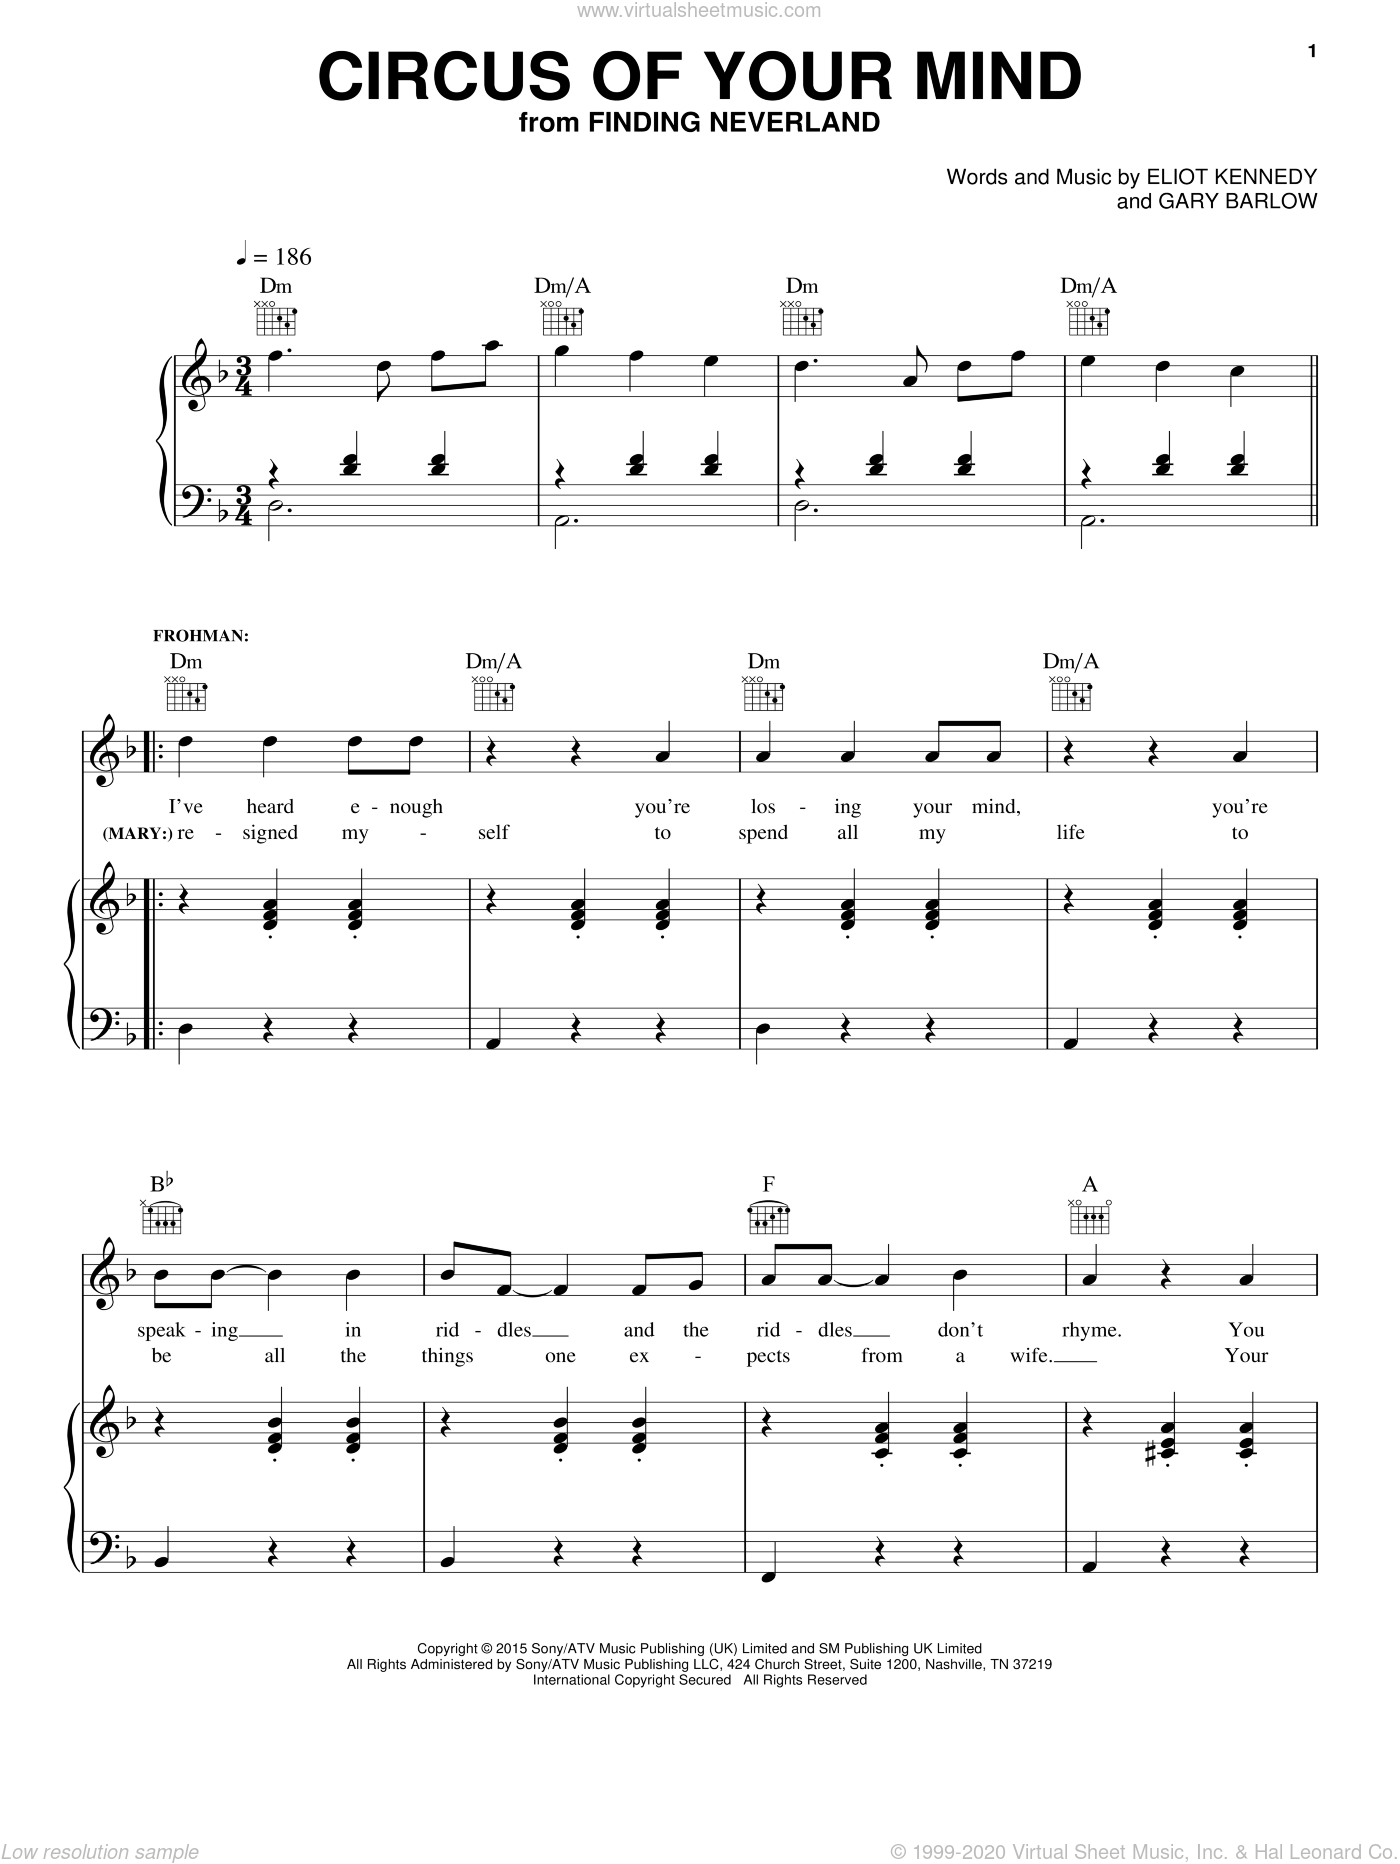 Circus Of Your Mind sheet music for voice, piano or guitar by Eliot Kennedy and Gary Barlow, intermediate skill level